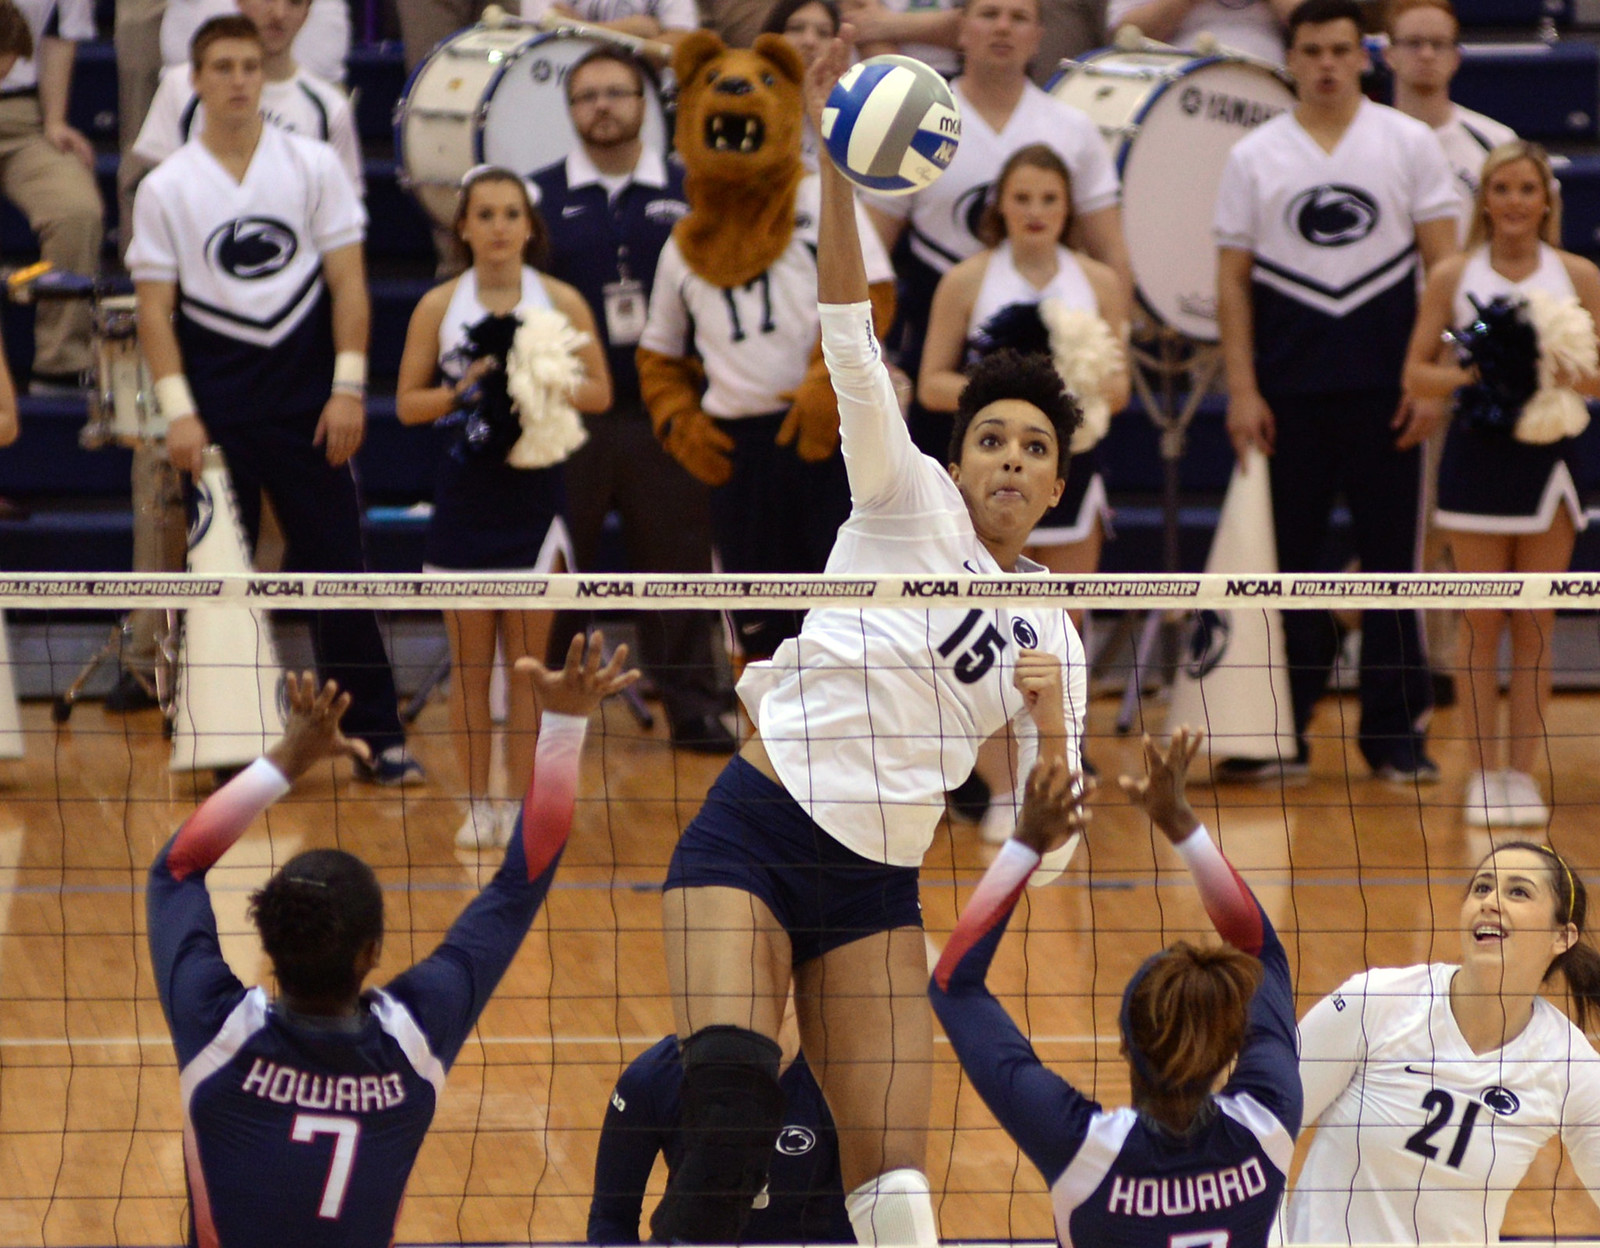 Volleyball Position - Haleigh Washington Penn State middle blocker attacks the ball from the middle. (Aversen)